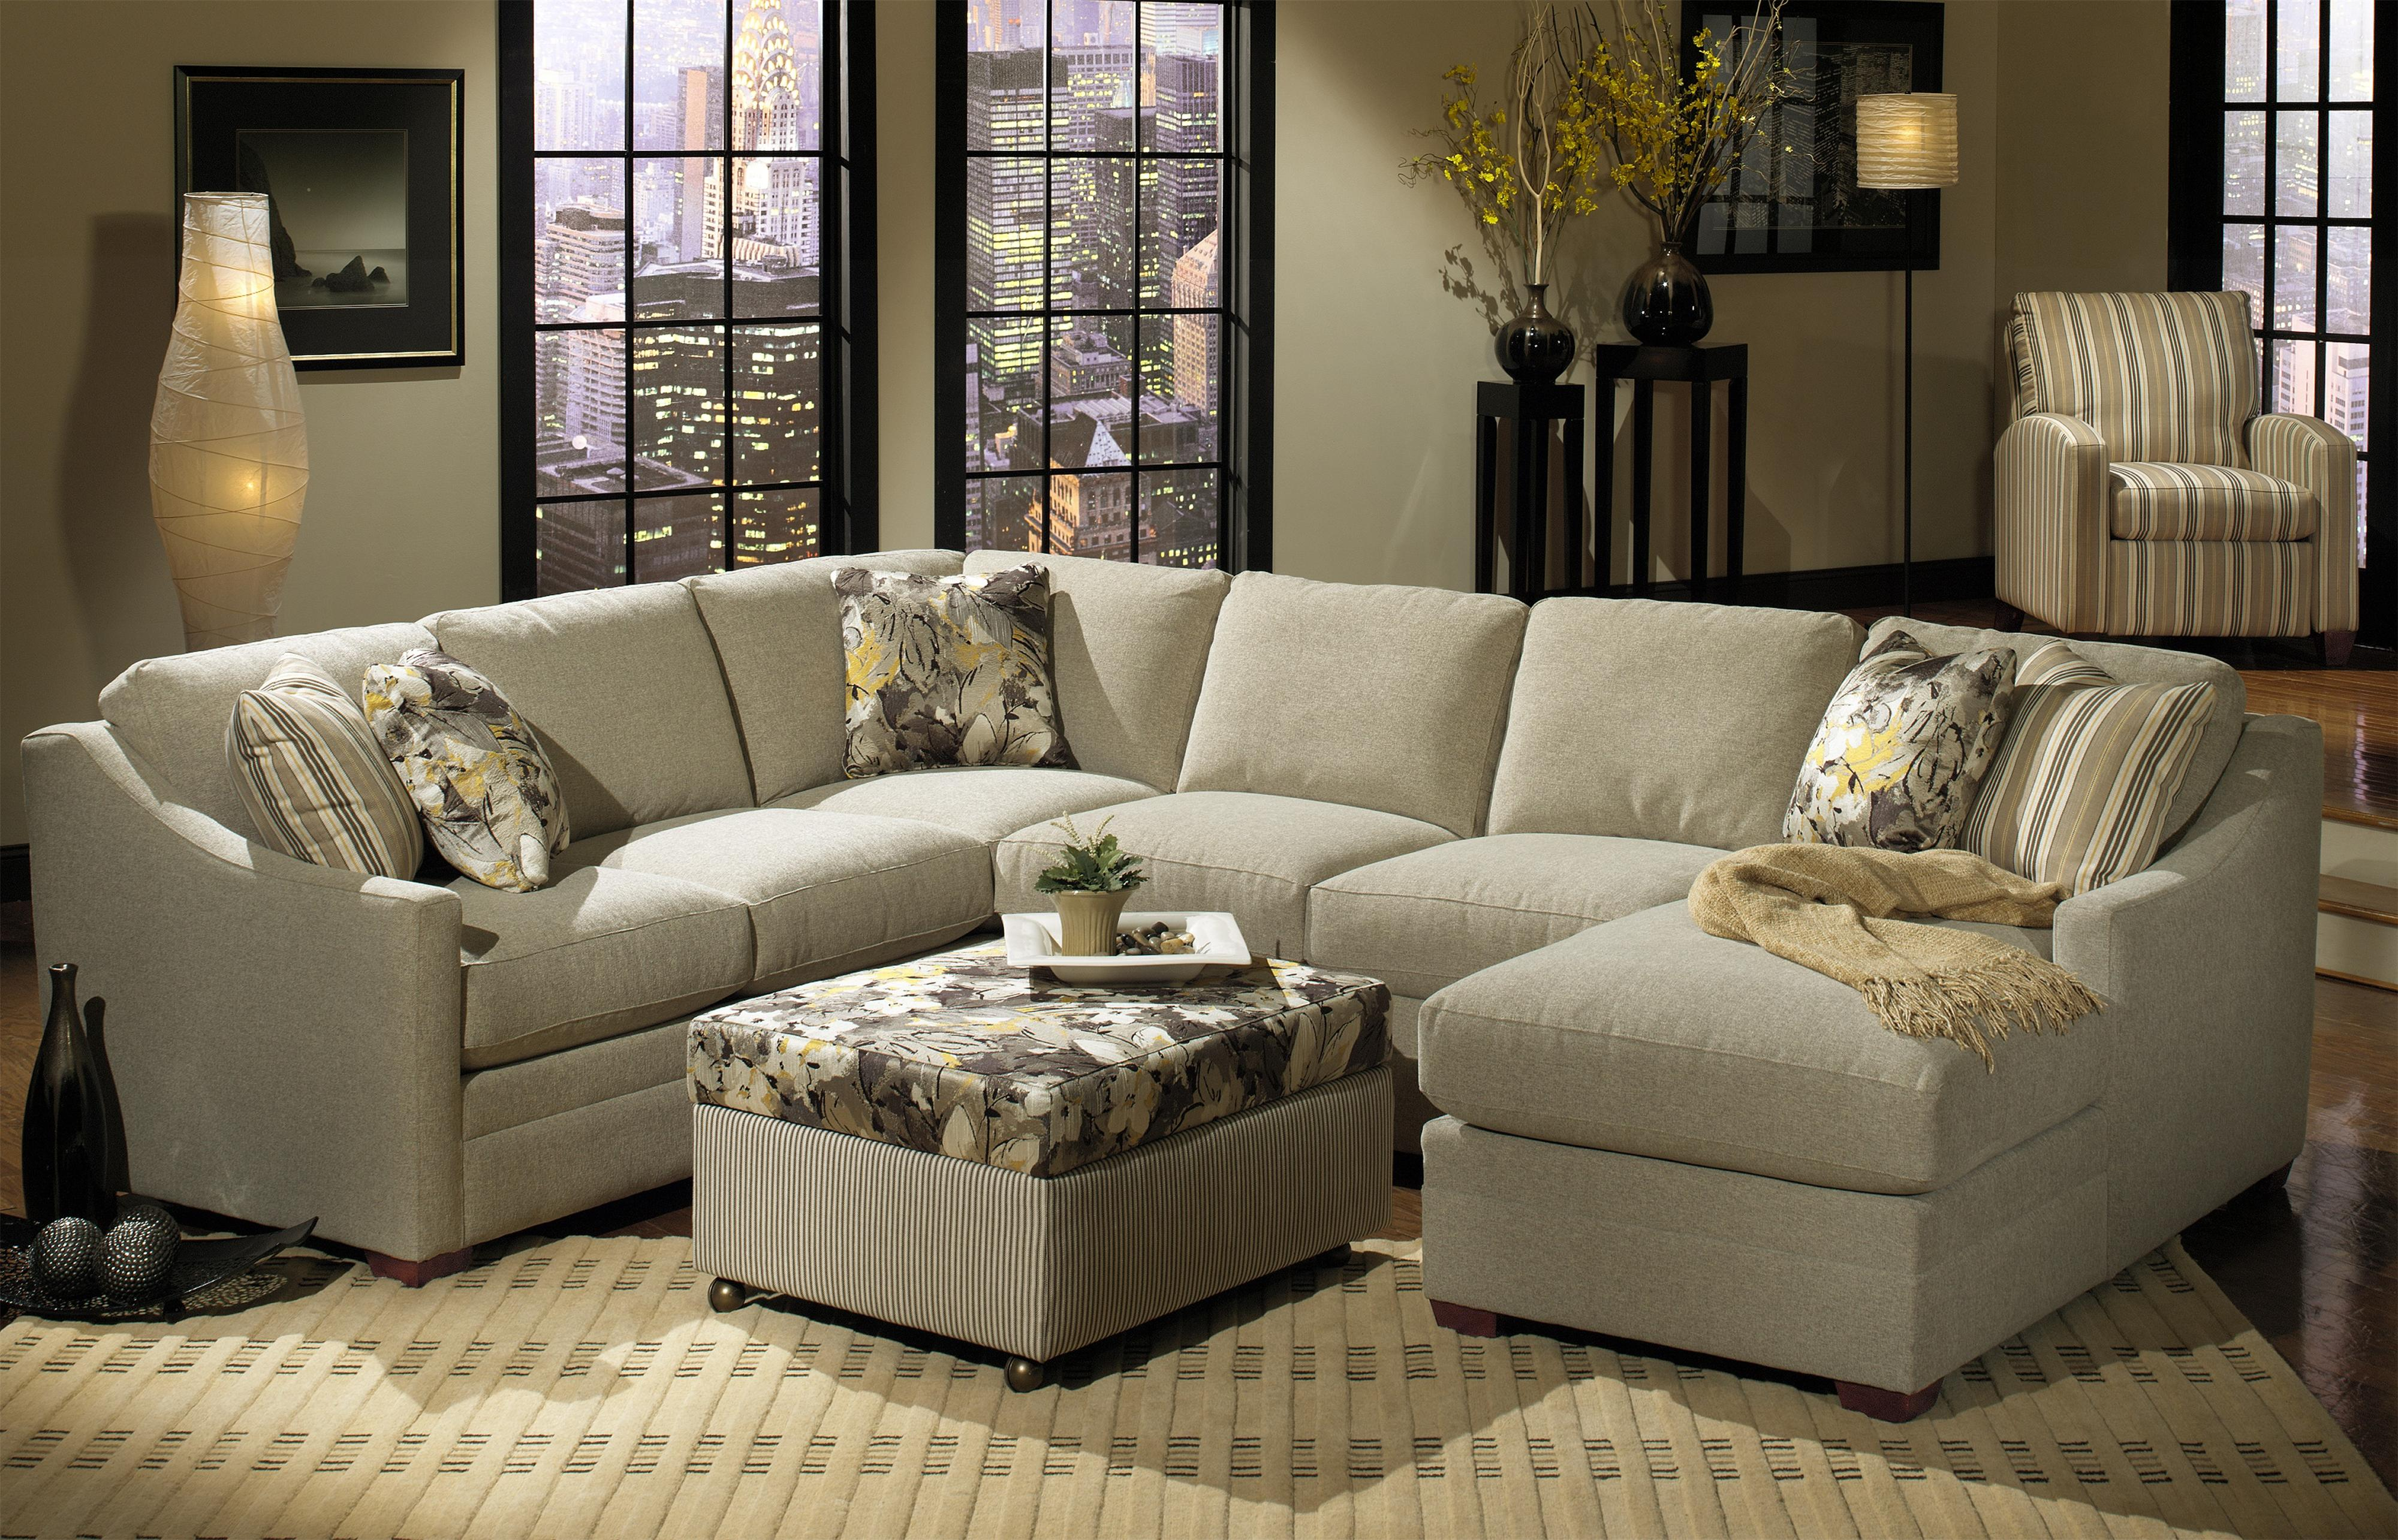 Craftmaster F9 Custom Collection Customizable Three Piece Sectional Sofa with Track Arms and Semi Attached Backs - Turk Furniture - Sectional Sofas Joliet ... : craftmaster f9 sectional - Sectionals, Sofas & Couches